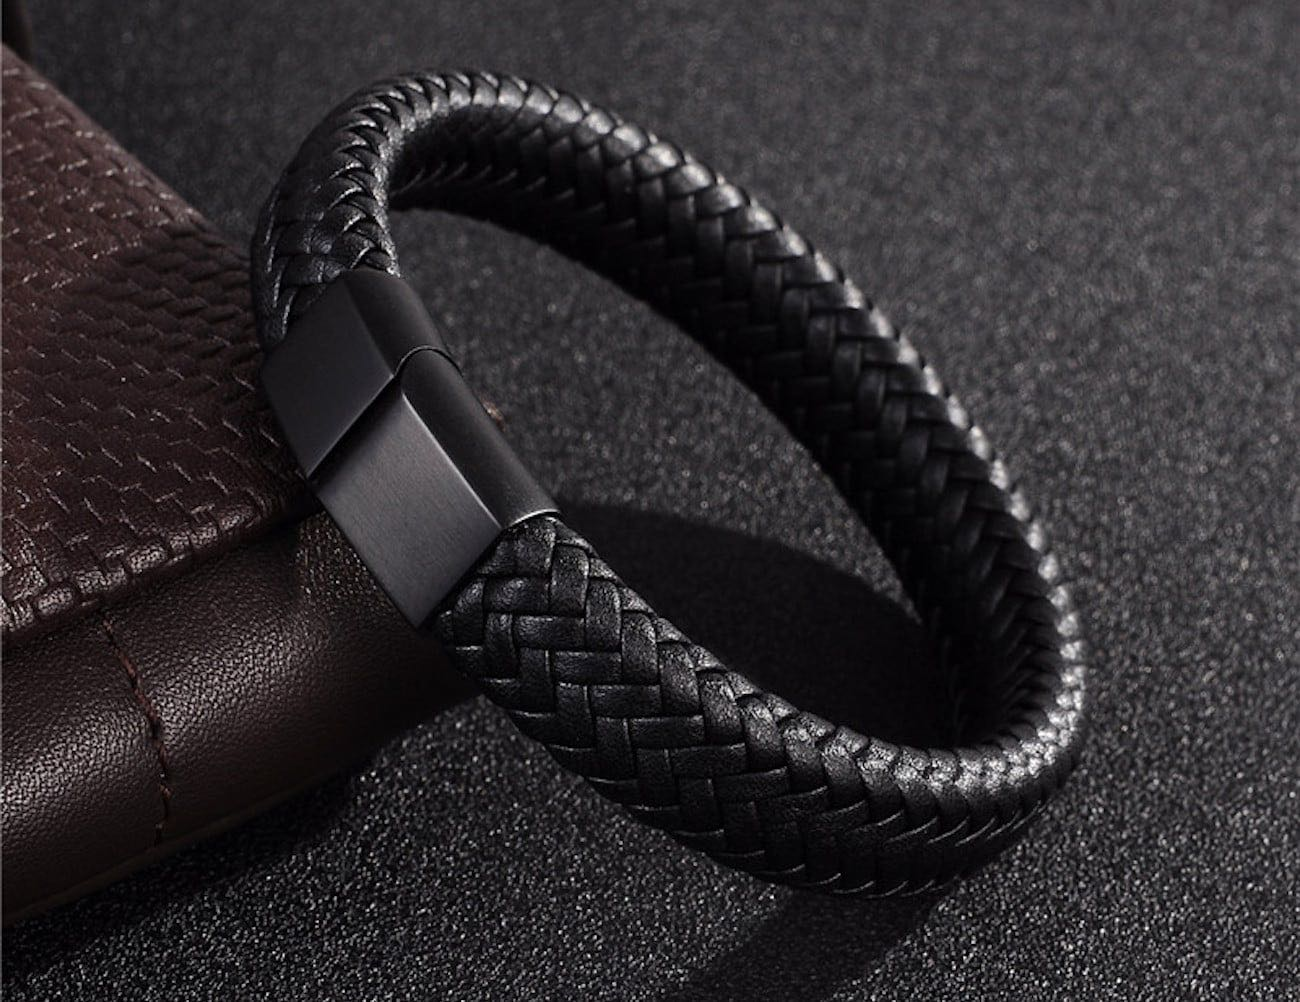 Leather Braided Bracelet with Stainless Steel Clasp